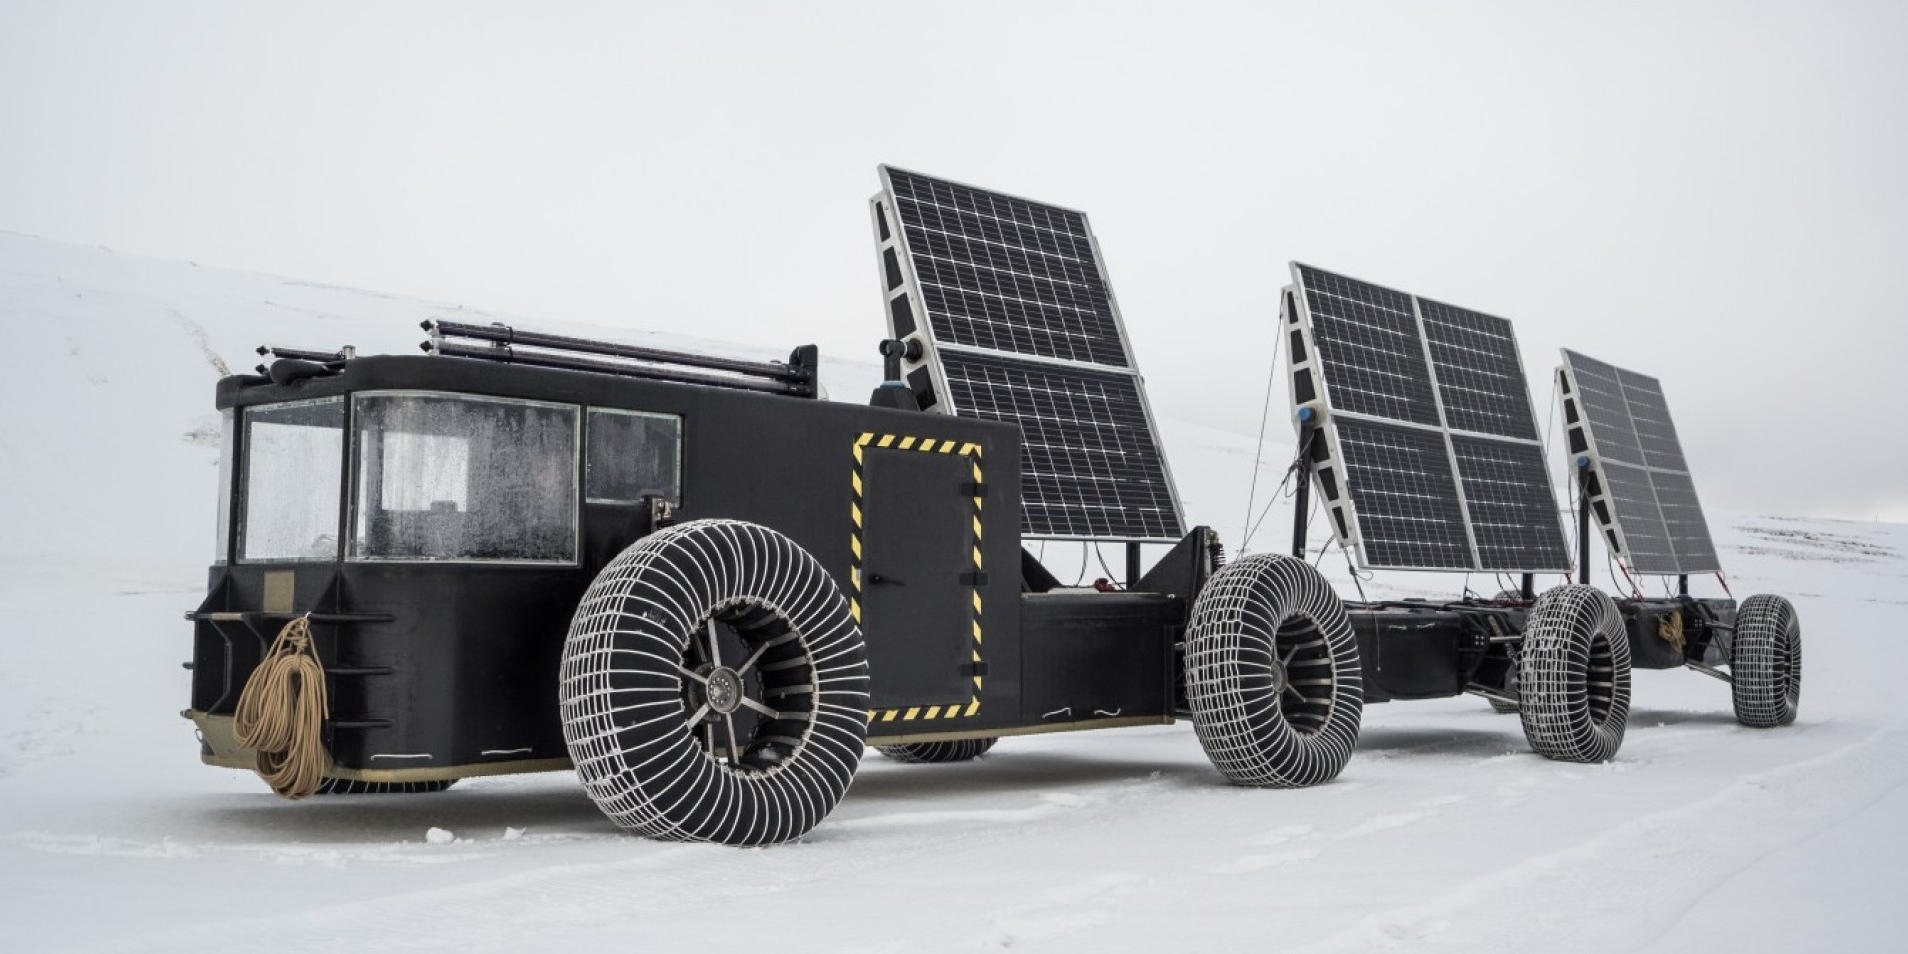 Driving to the South Pole in a solar powered electric vehicle made of 3D printed garbage